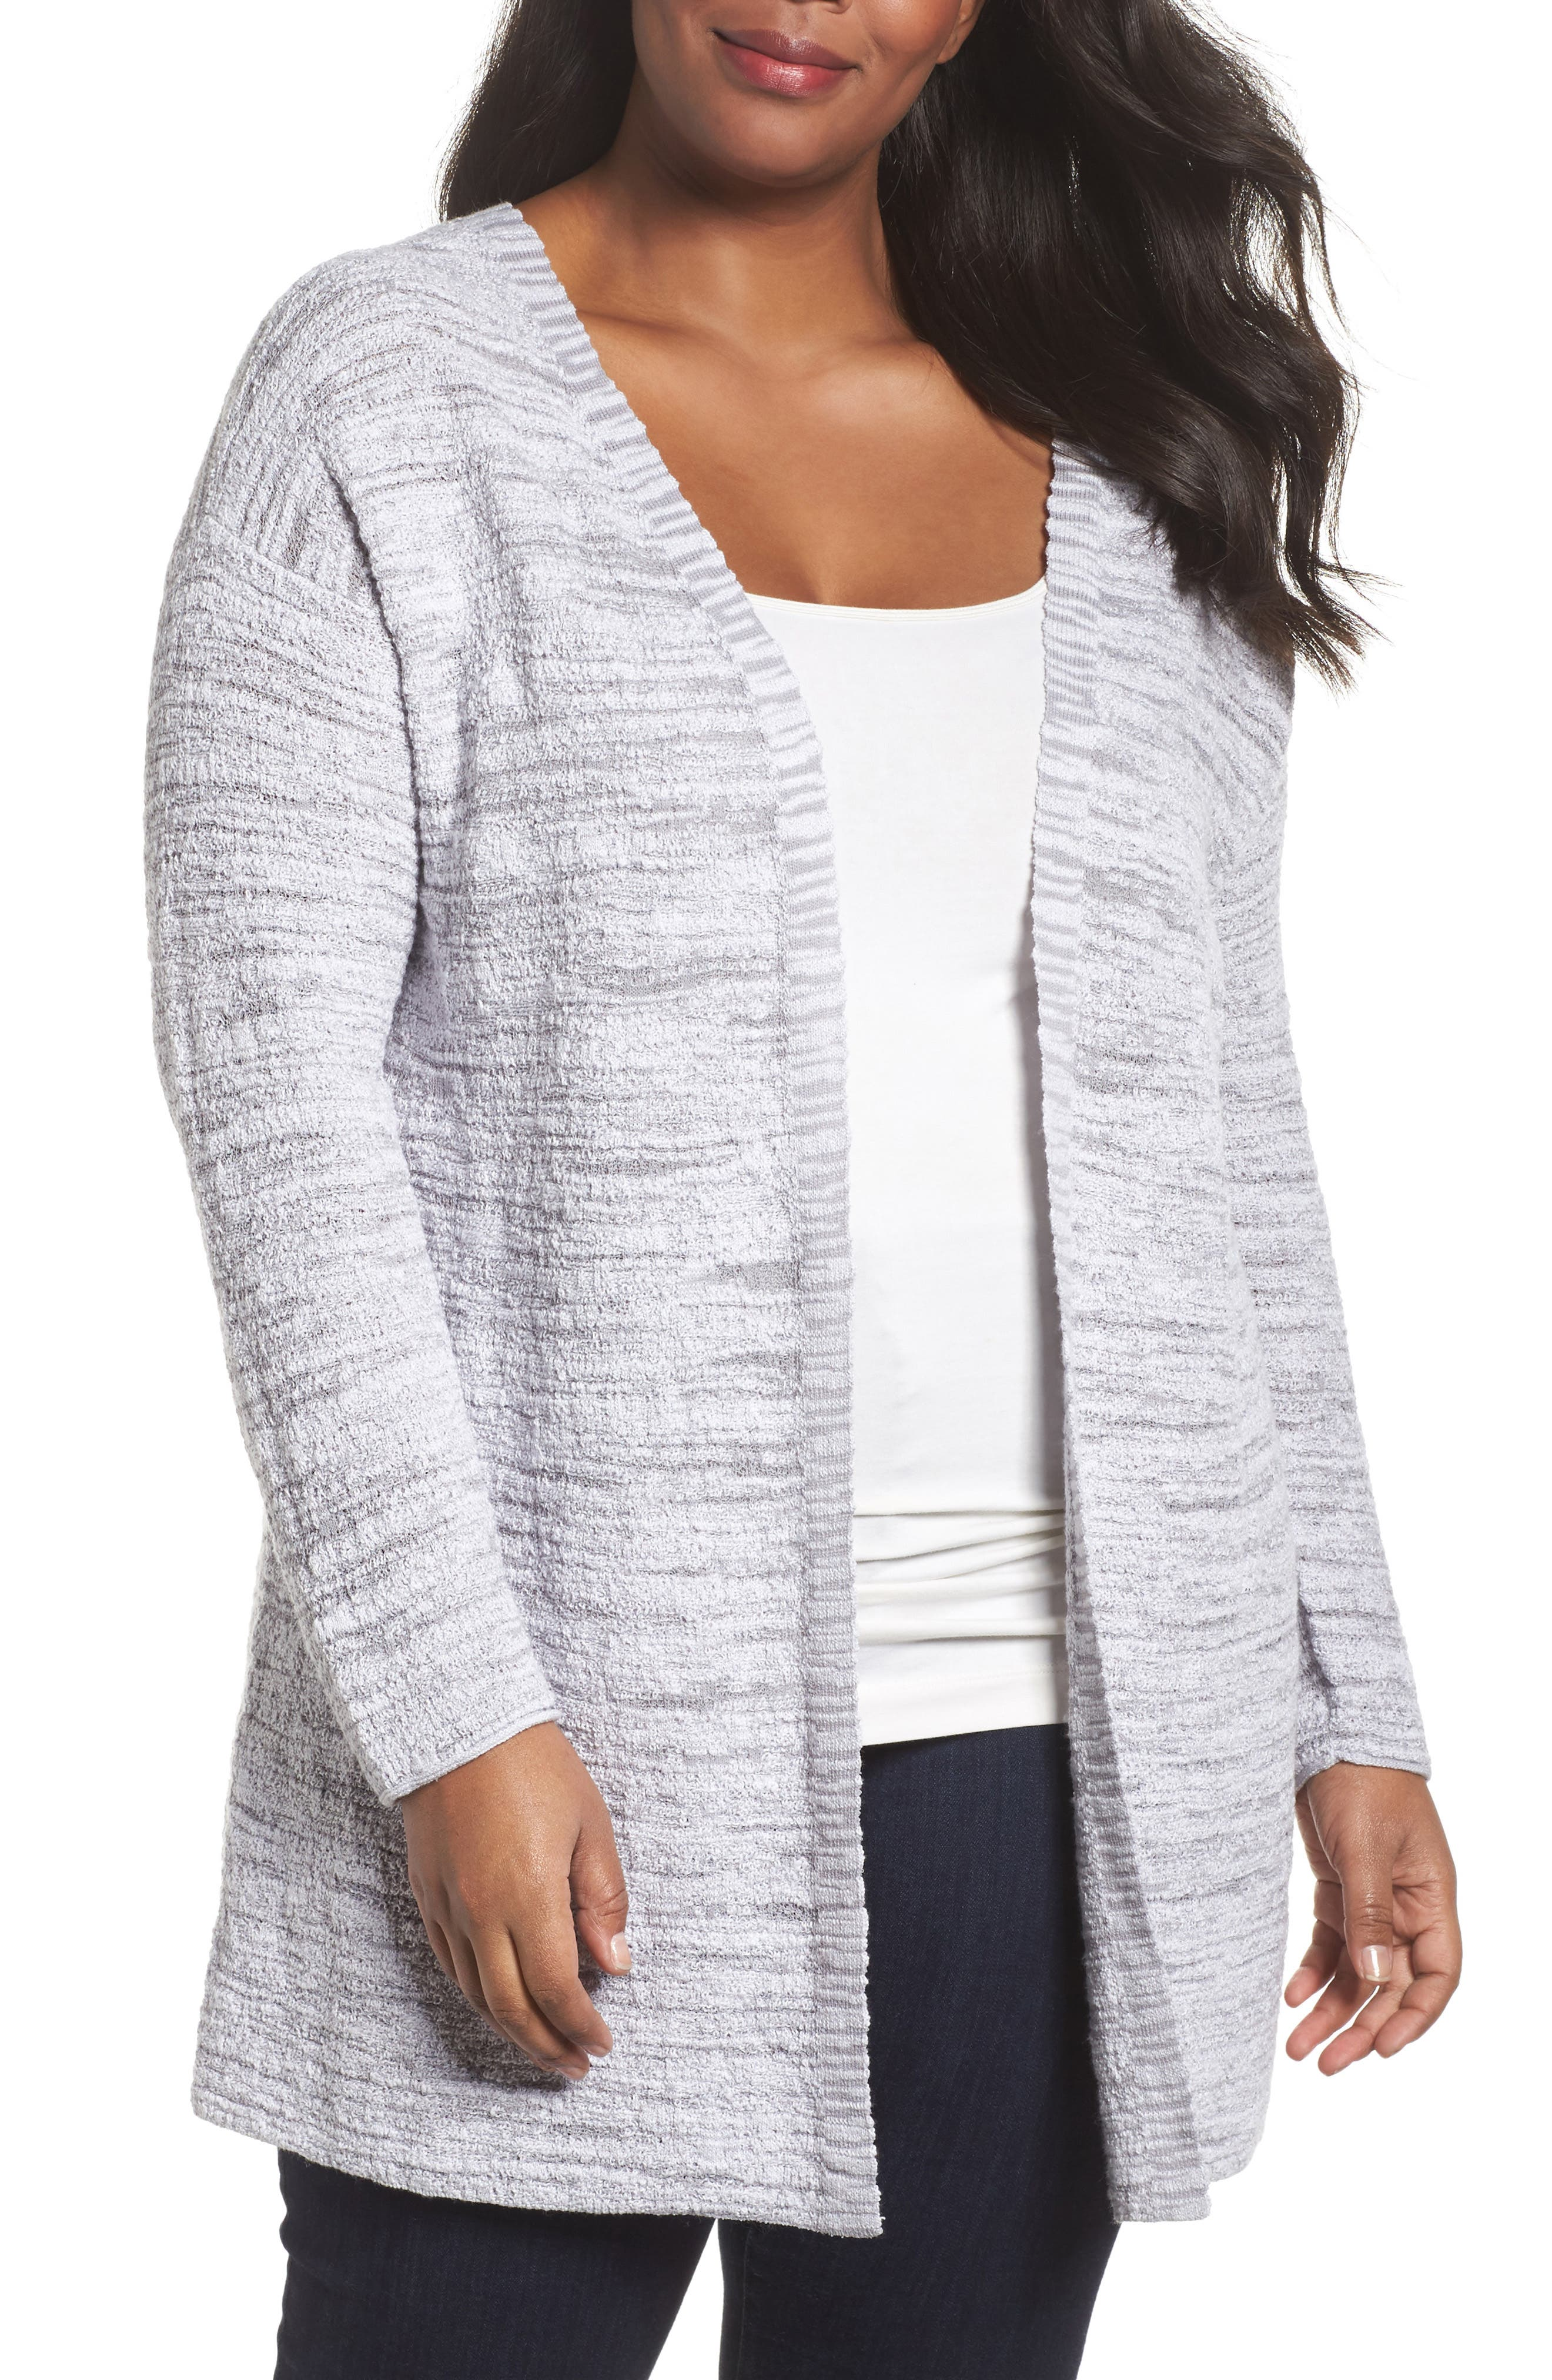 Lace It Back Cardigan,                         Main,                         color, Icy Grey